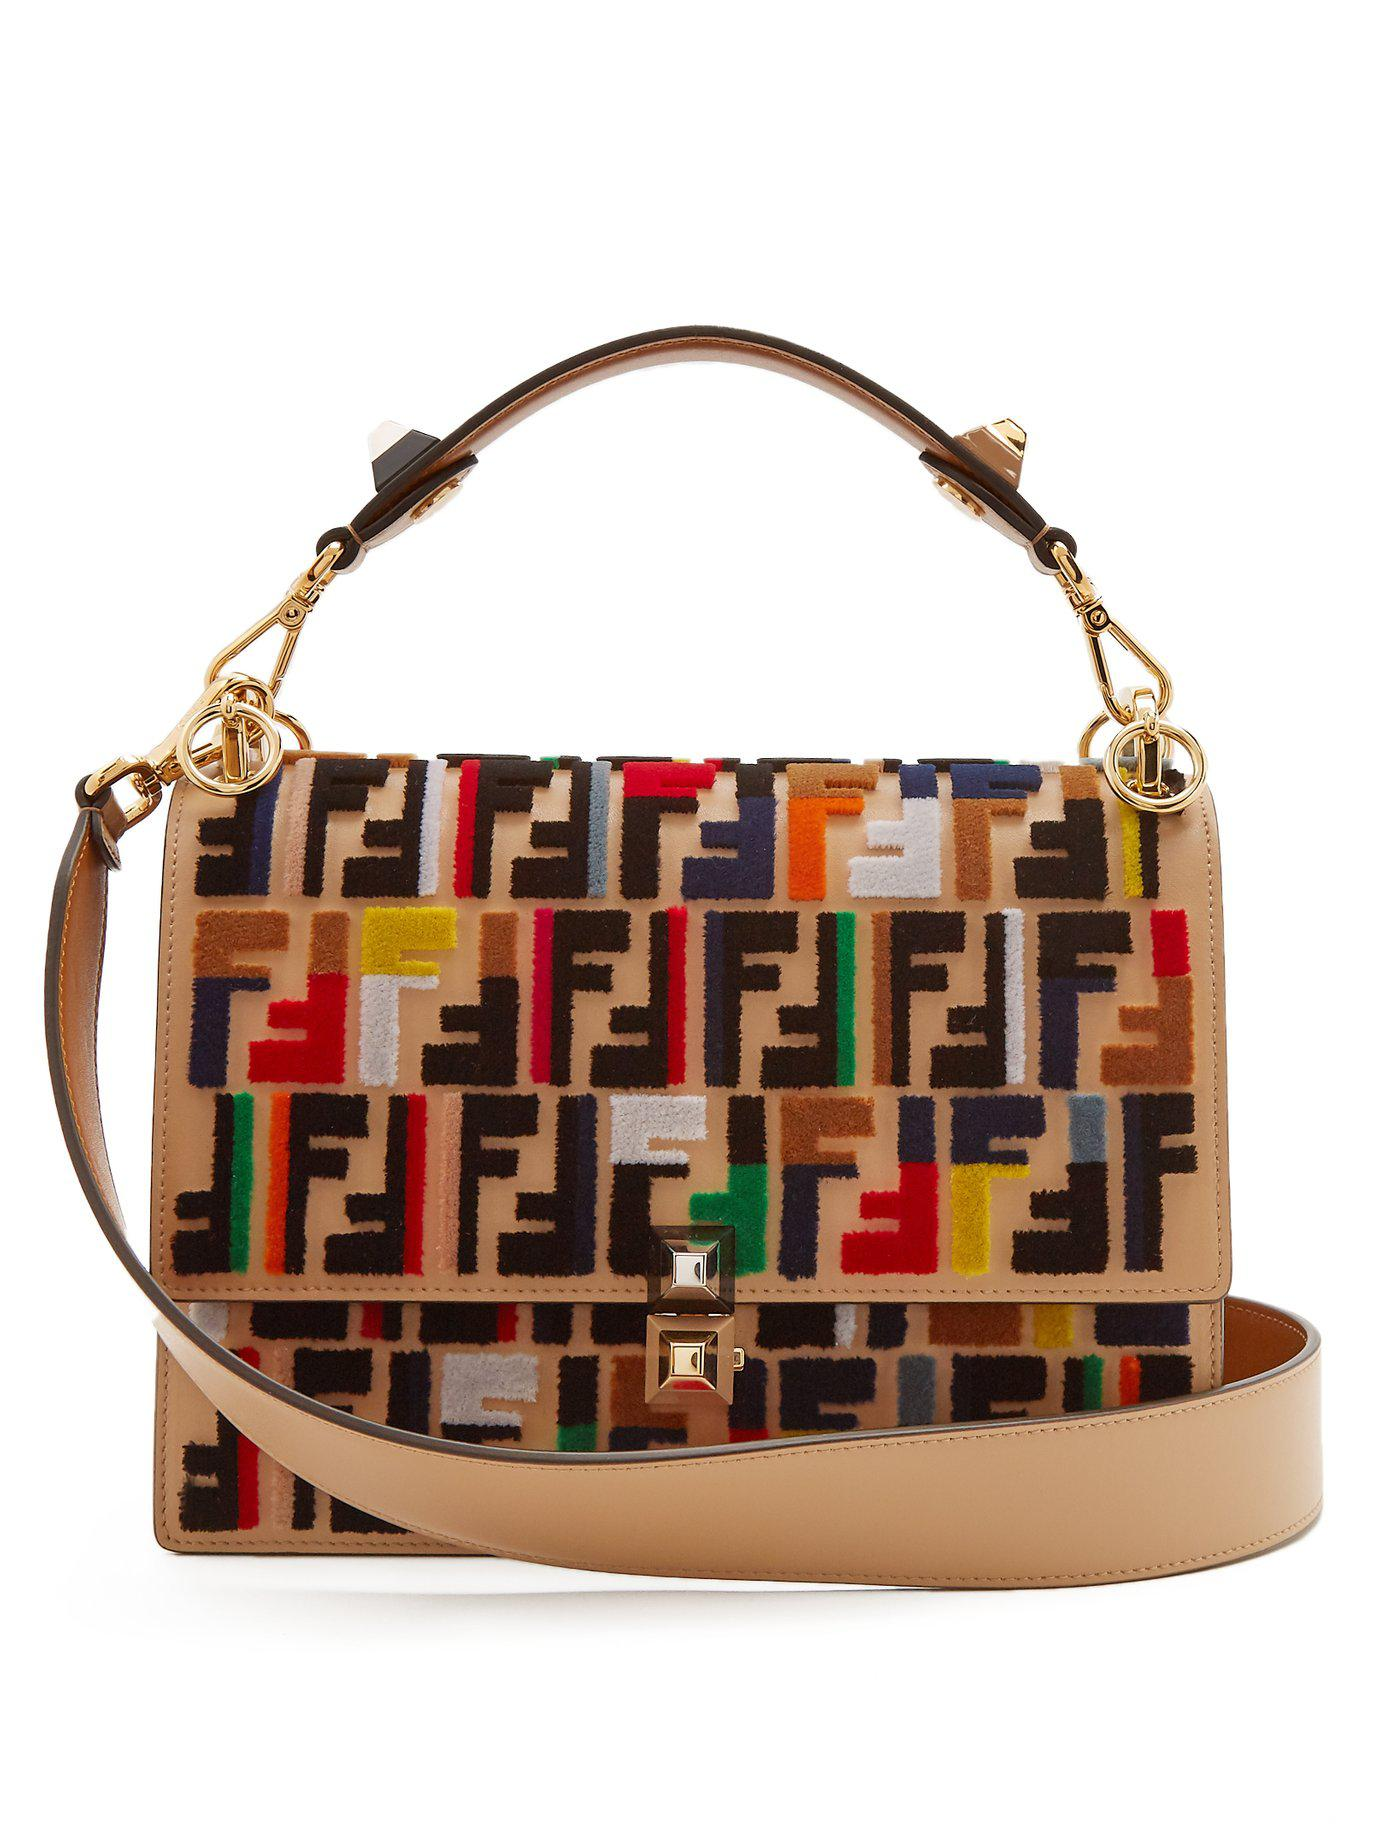 5e13feb56637 Lyst - Fendi Kan I Fun Fair Leather Shoulder Bag in Brown